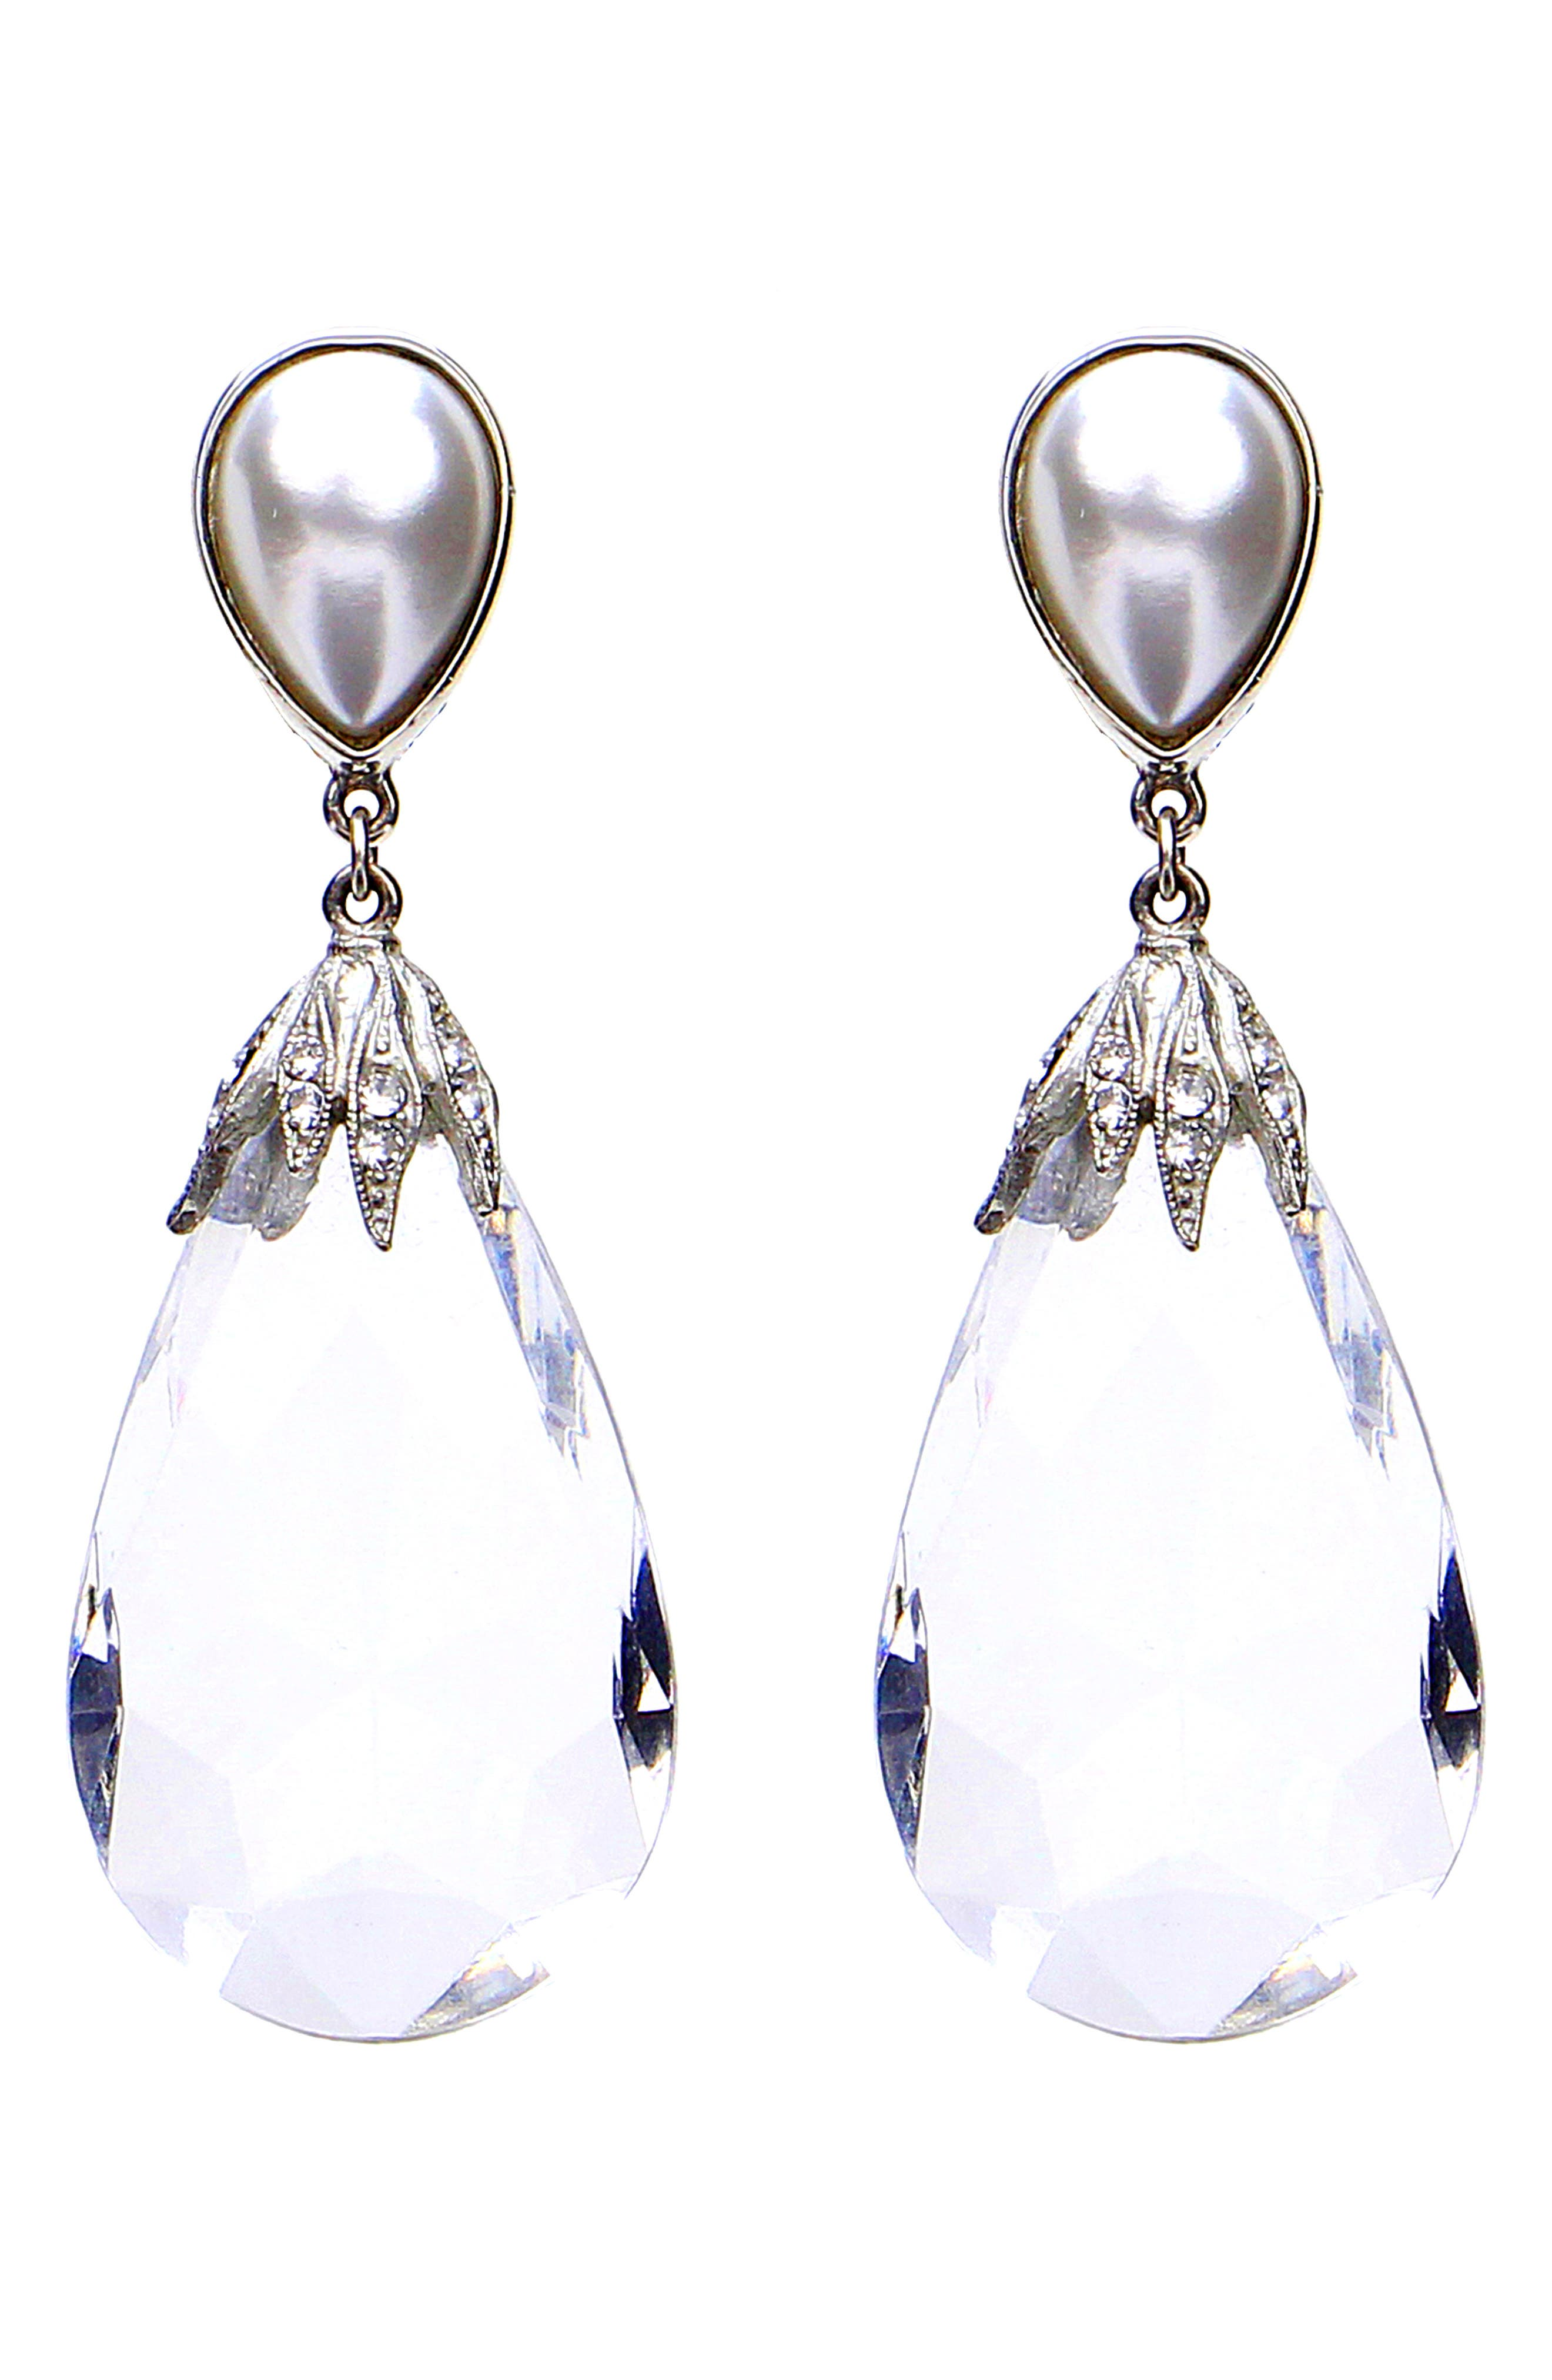 Imitation Pearl & Crystal Drop Earrings,                         Main,                         color, Clear/ Silver